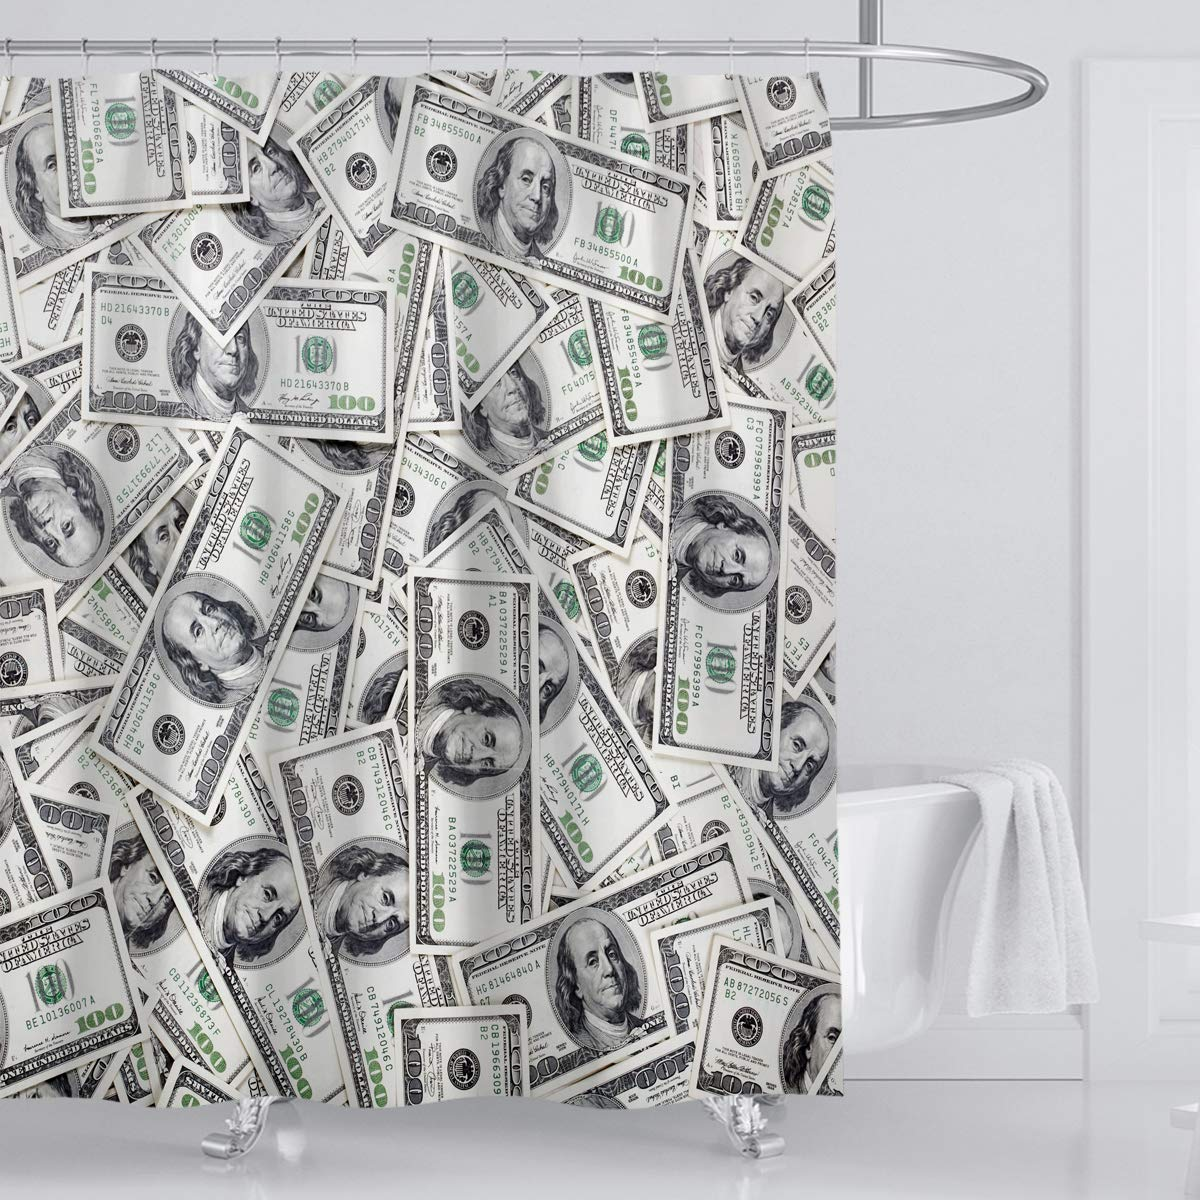 Funny Bill Dollars Shower Curtain Hundred Money United States Waterproof Odorless Shower Curtain Set with 12 Hooks.